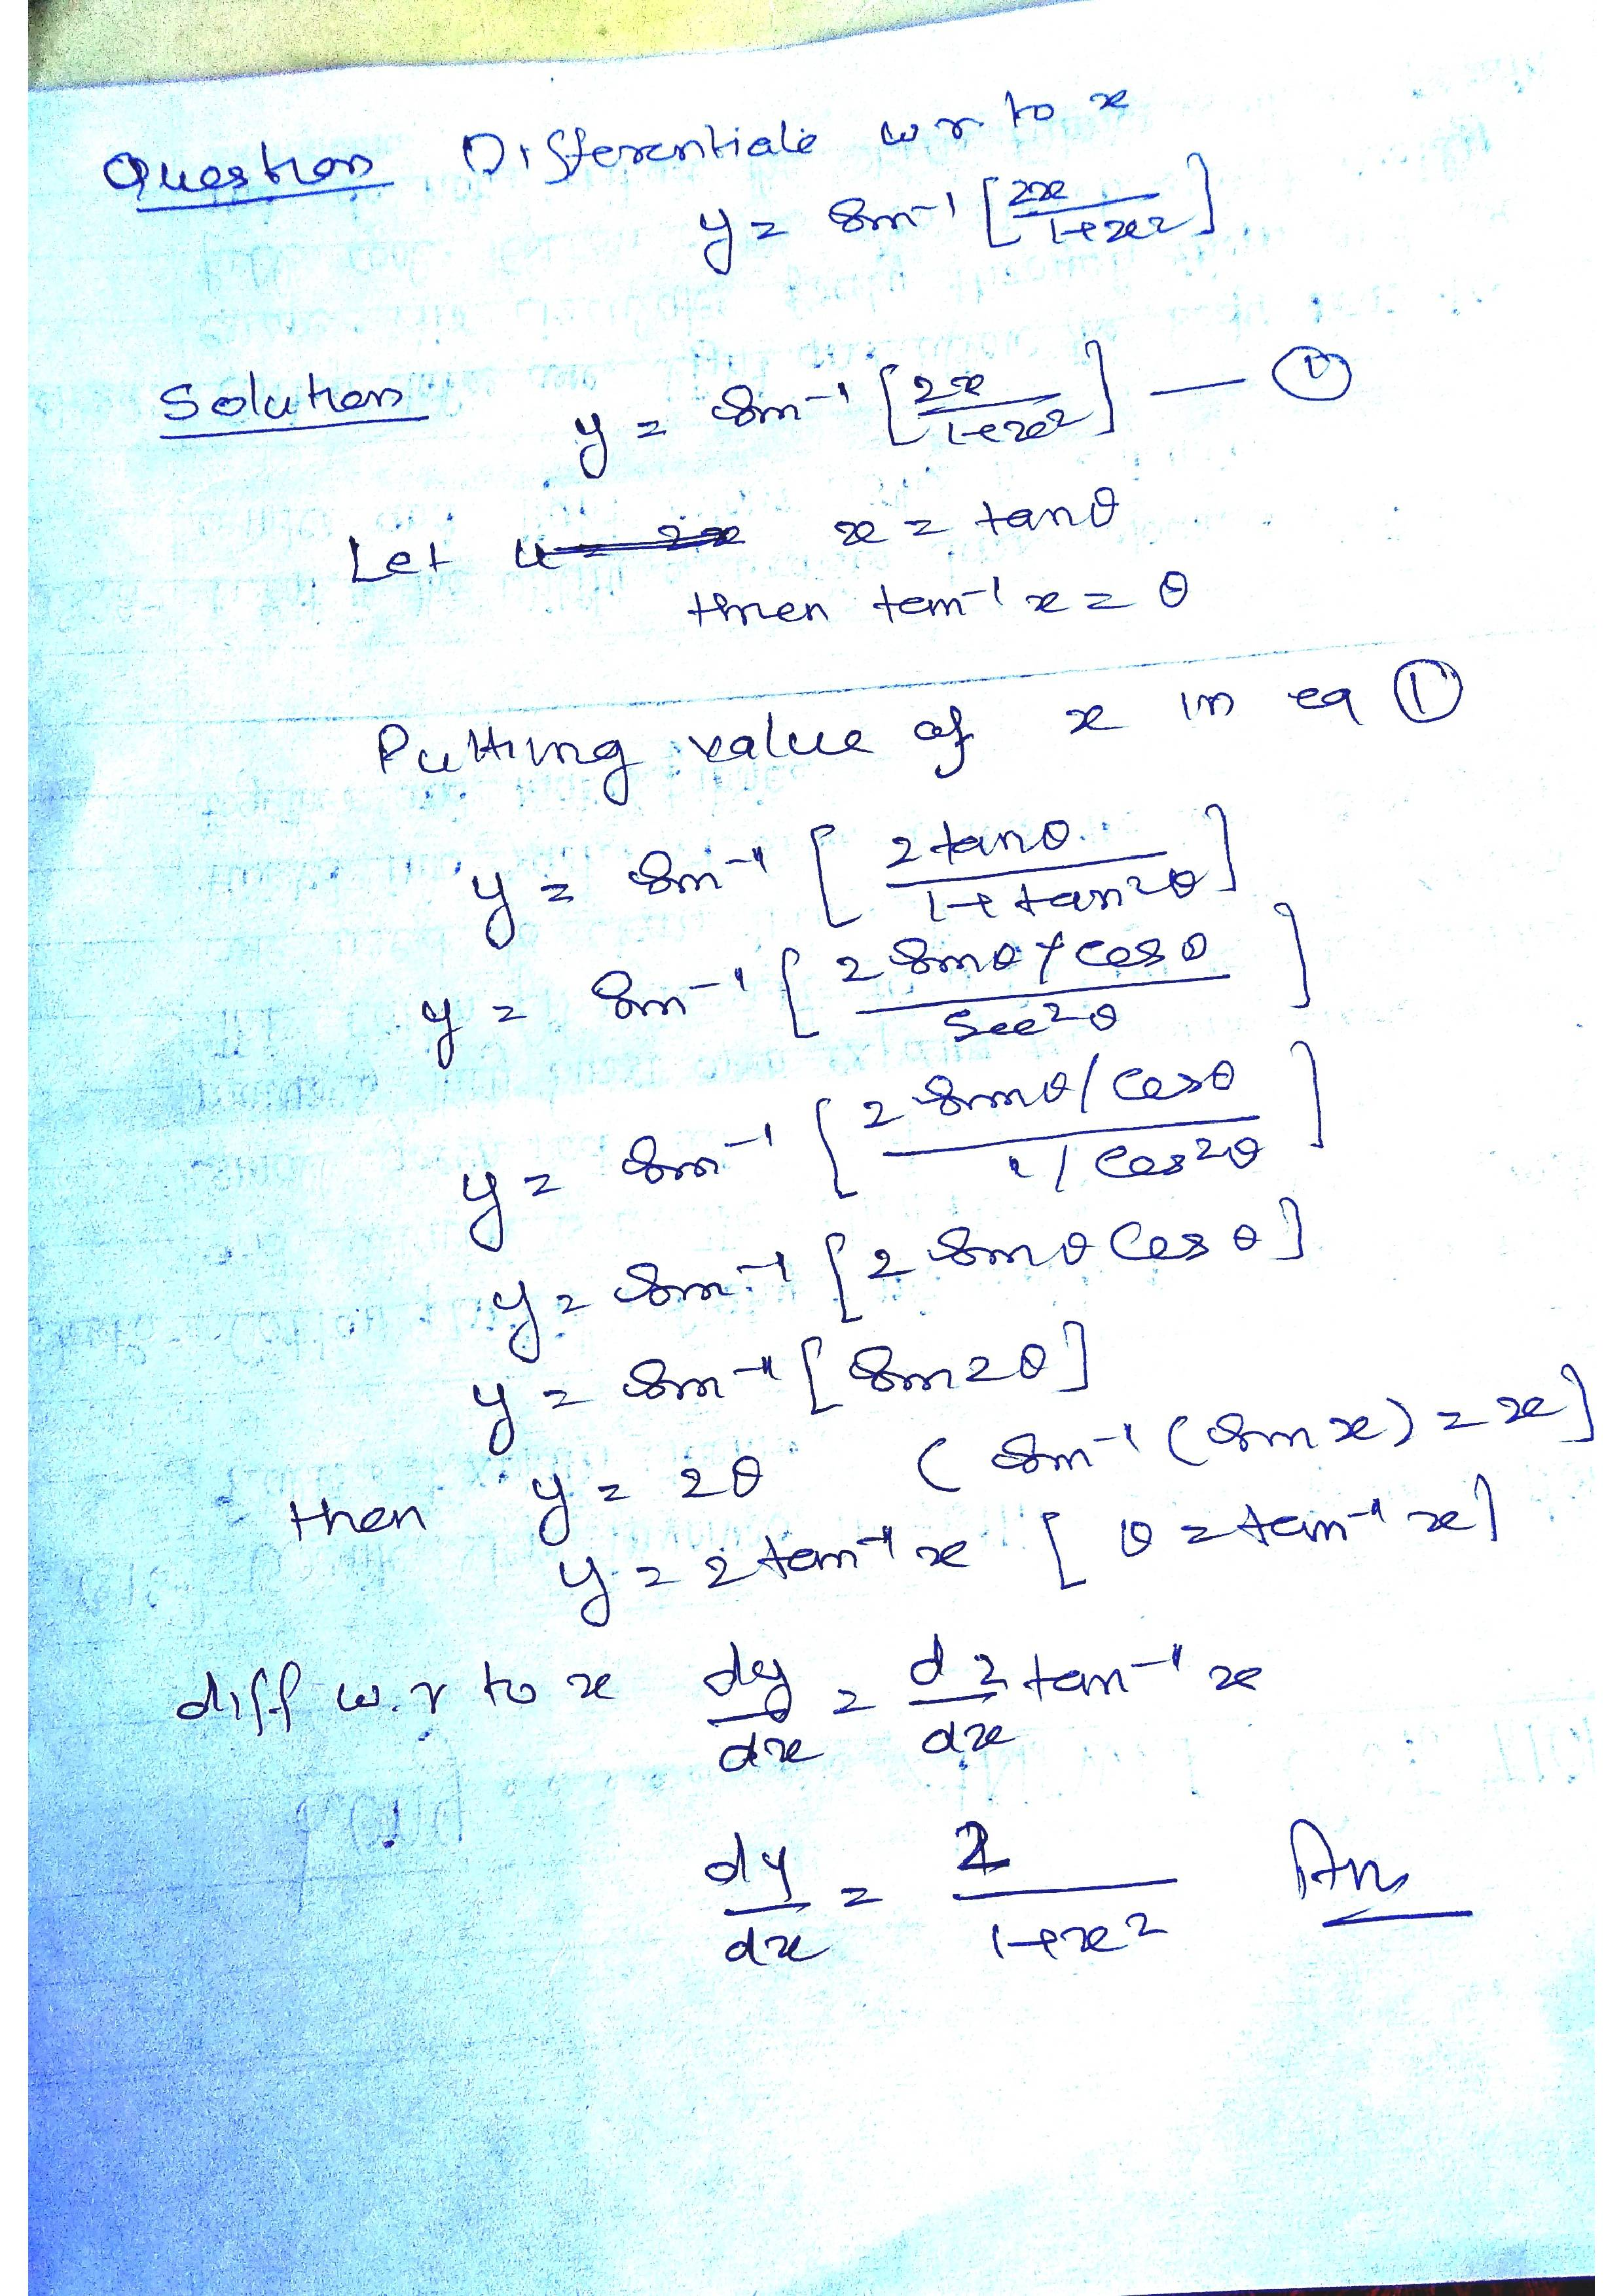 Notes on Solution for math problem